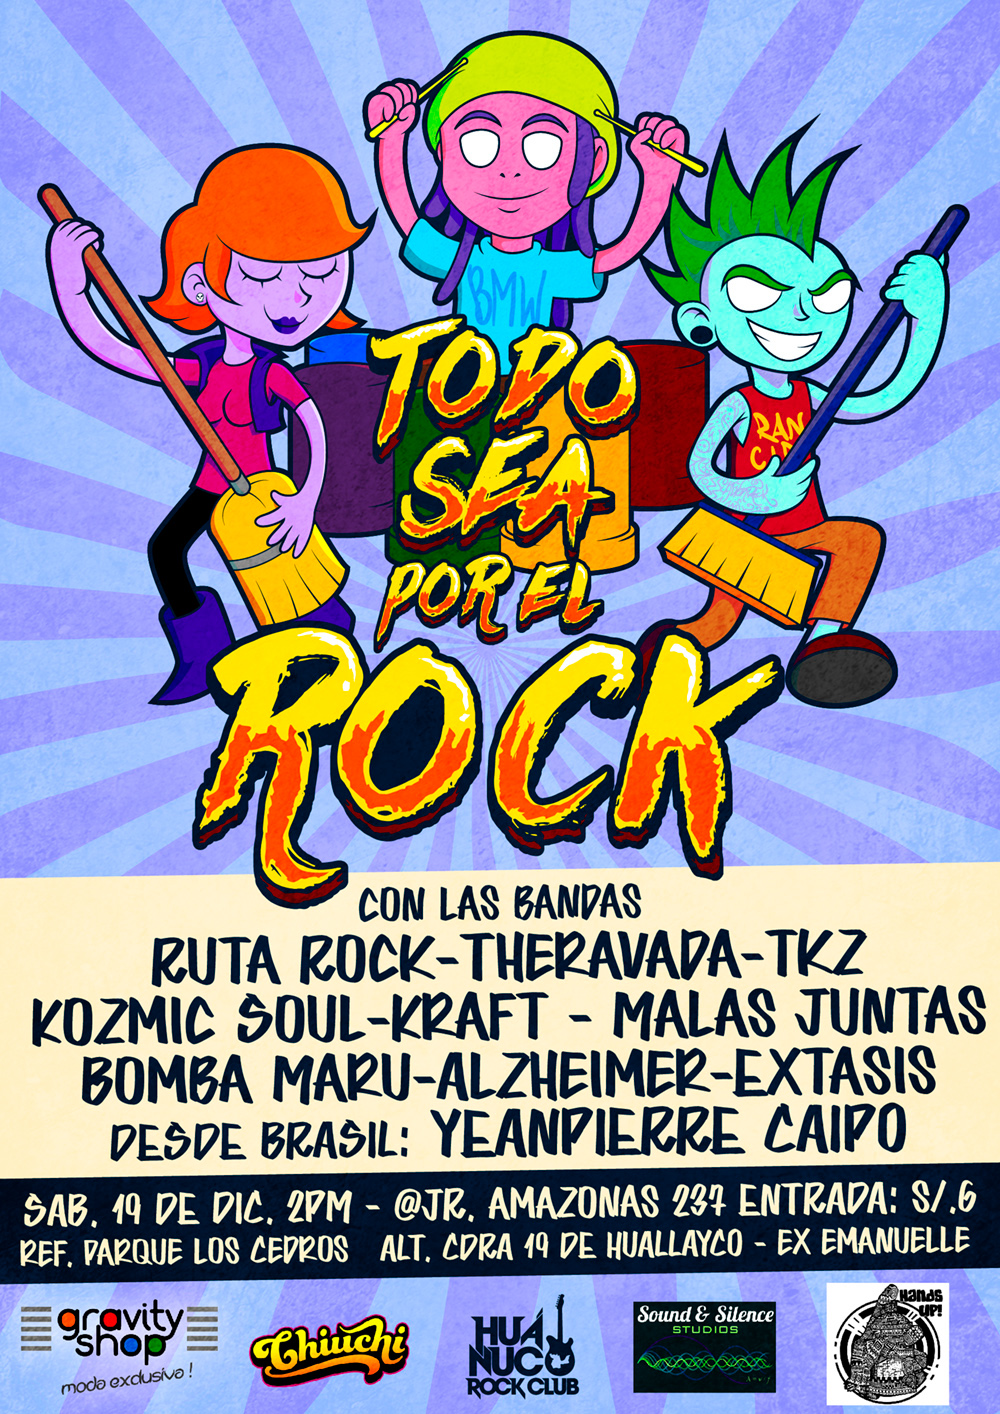 cartoon rock concert flyer by Bjorn Anka